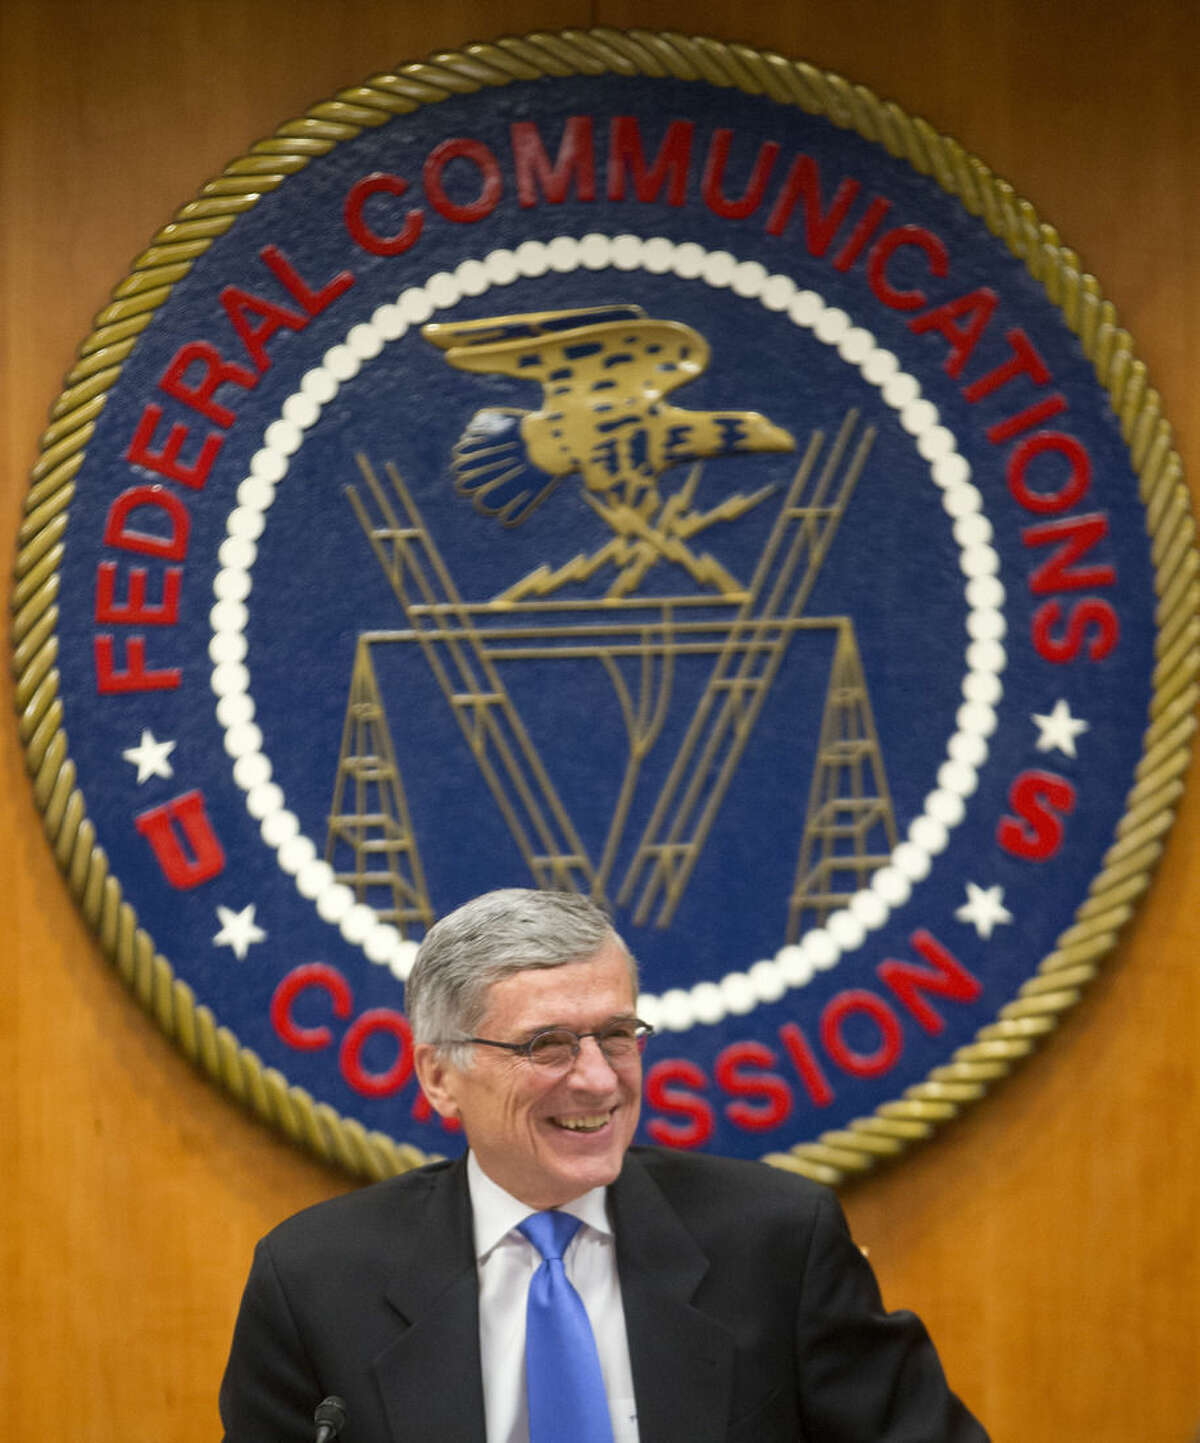 AP photo/ Pablo Martinez Monsivais Federal Communication Commission (FCC Chairman Tom Wheeler takes his seat before the start of an open hearing in Washington, Thursday, Feb. 26.